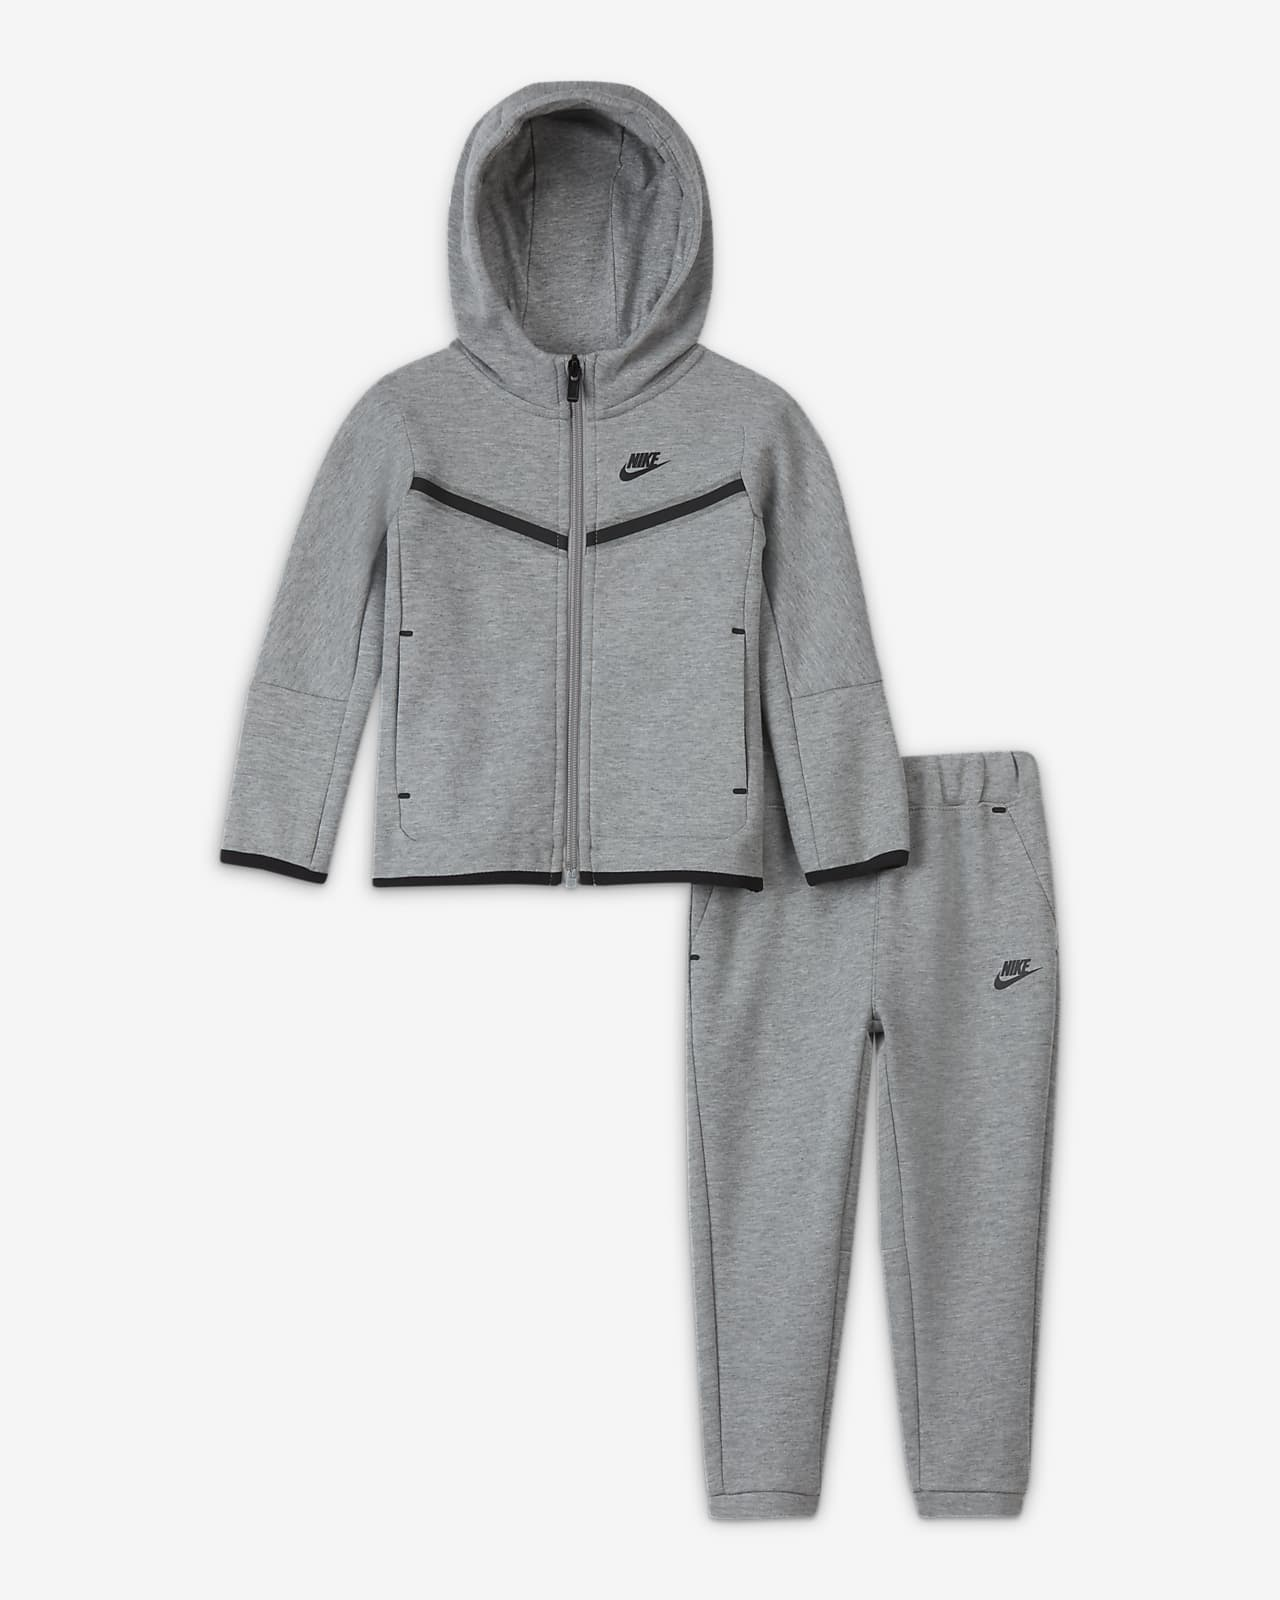 Nike Sportswear Tech Fleece Baby (12–24M) Zip Hoodie and Trousers Set